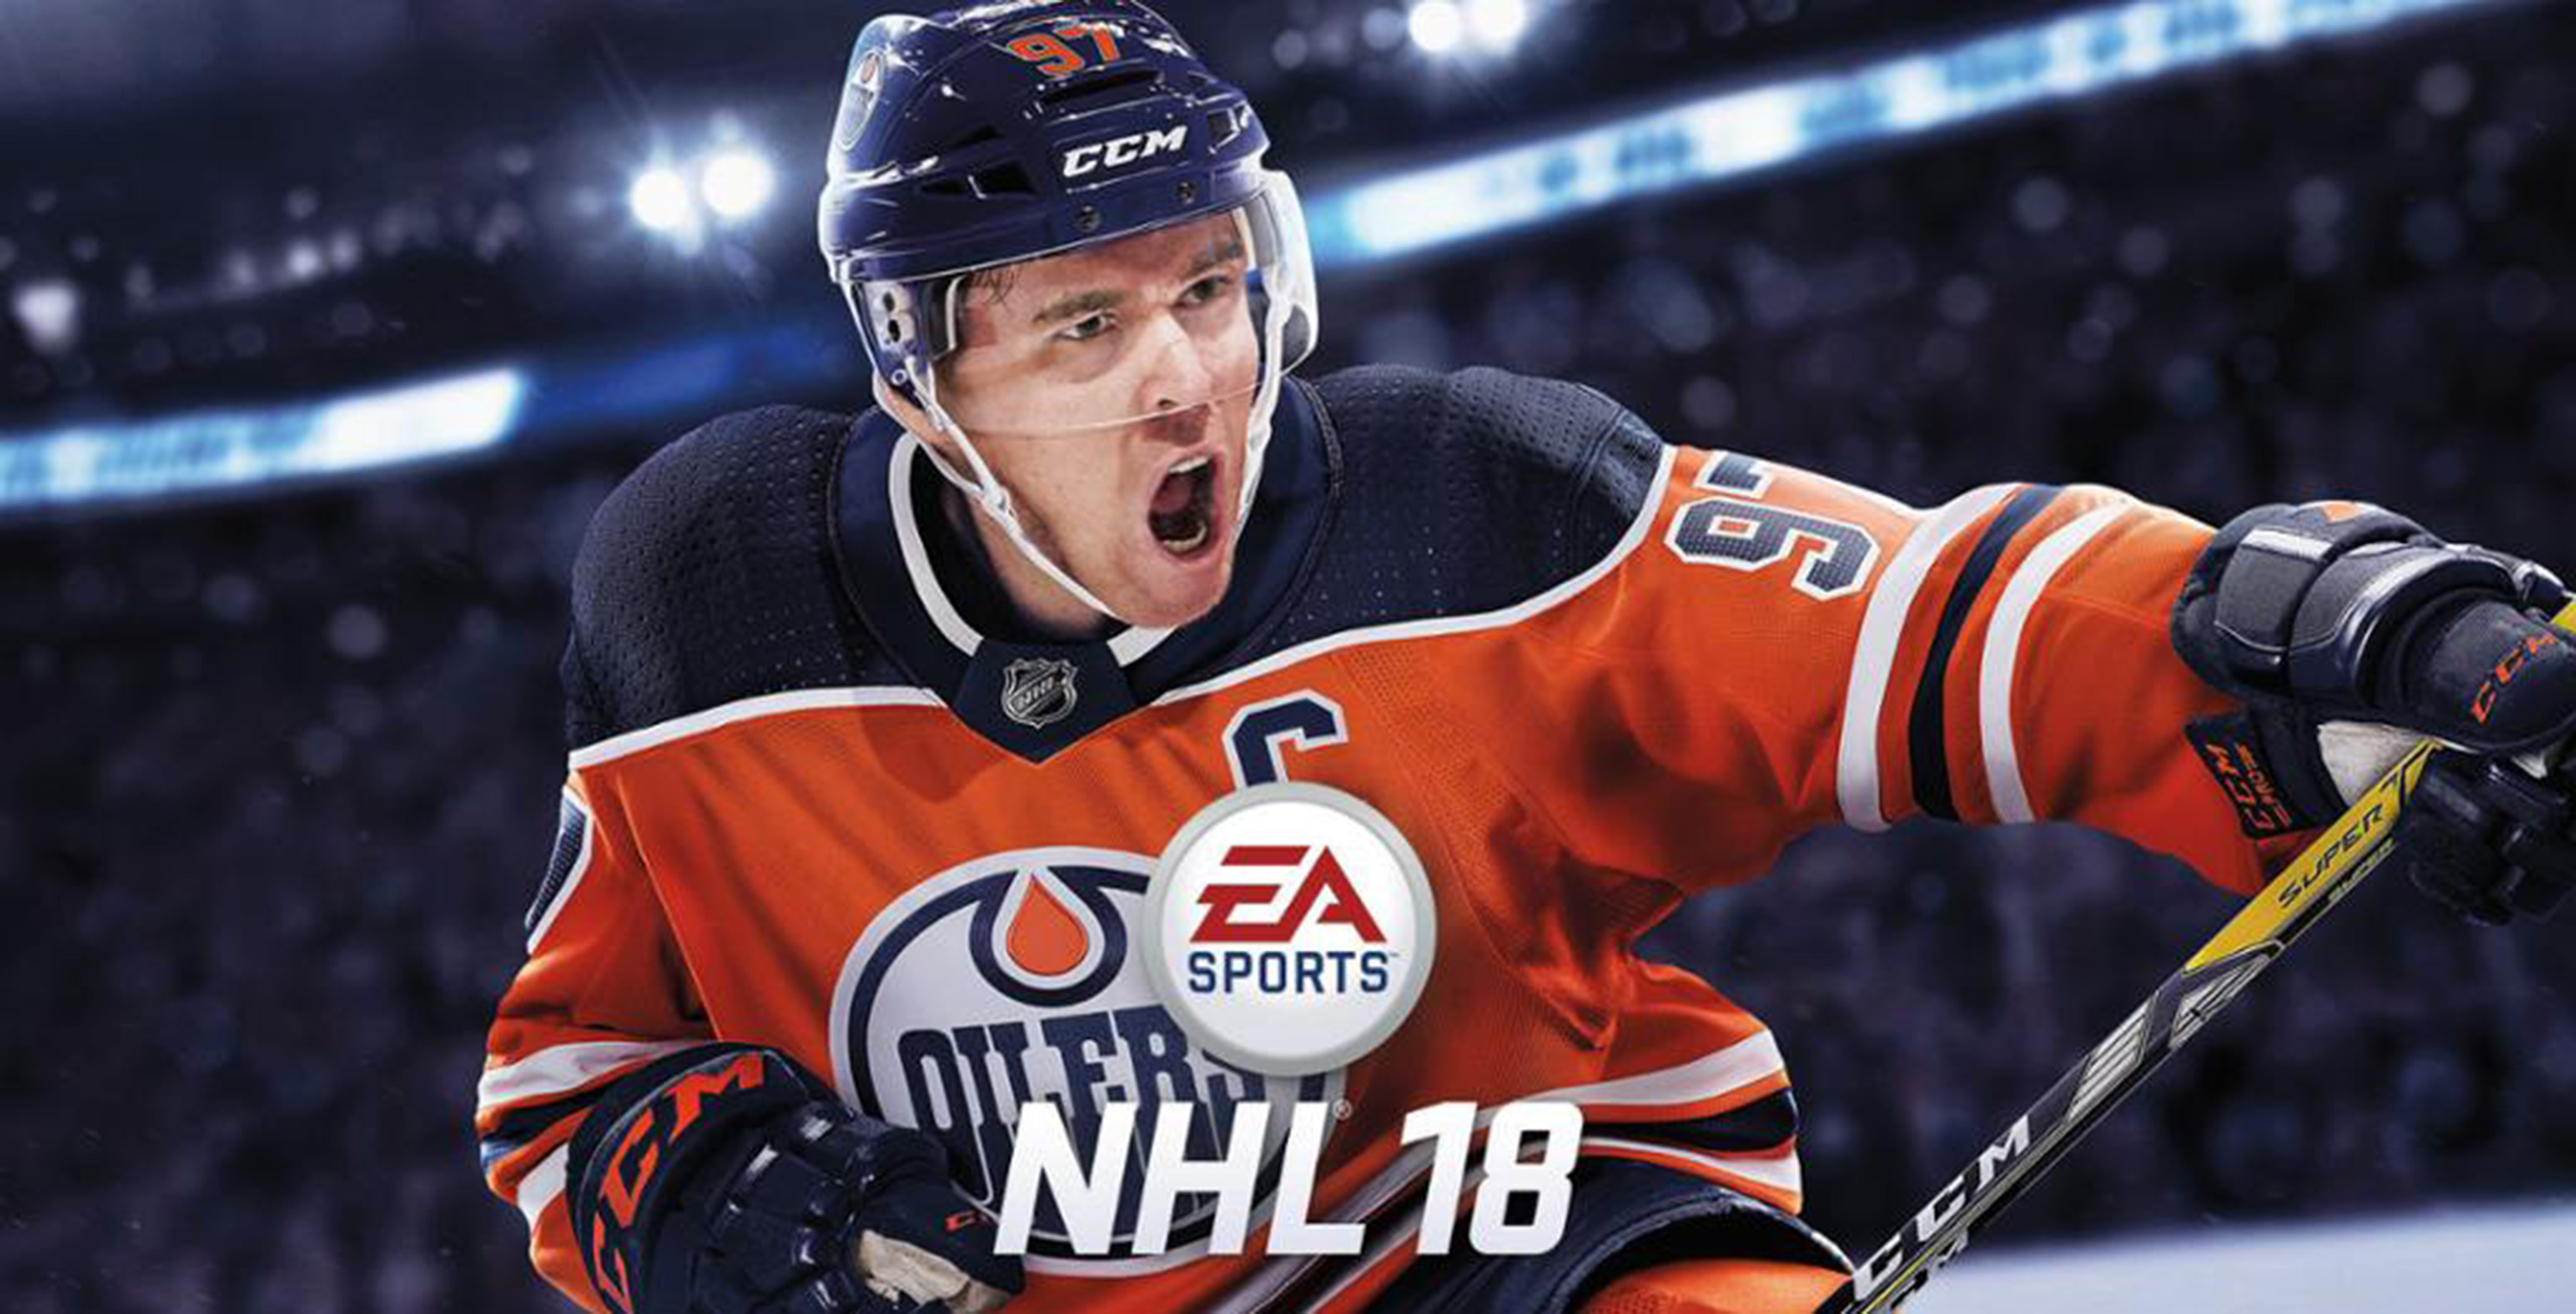 Canadians Can Compete For 100 000 In Nhl Gaming World Championship